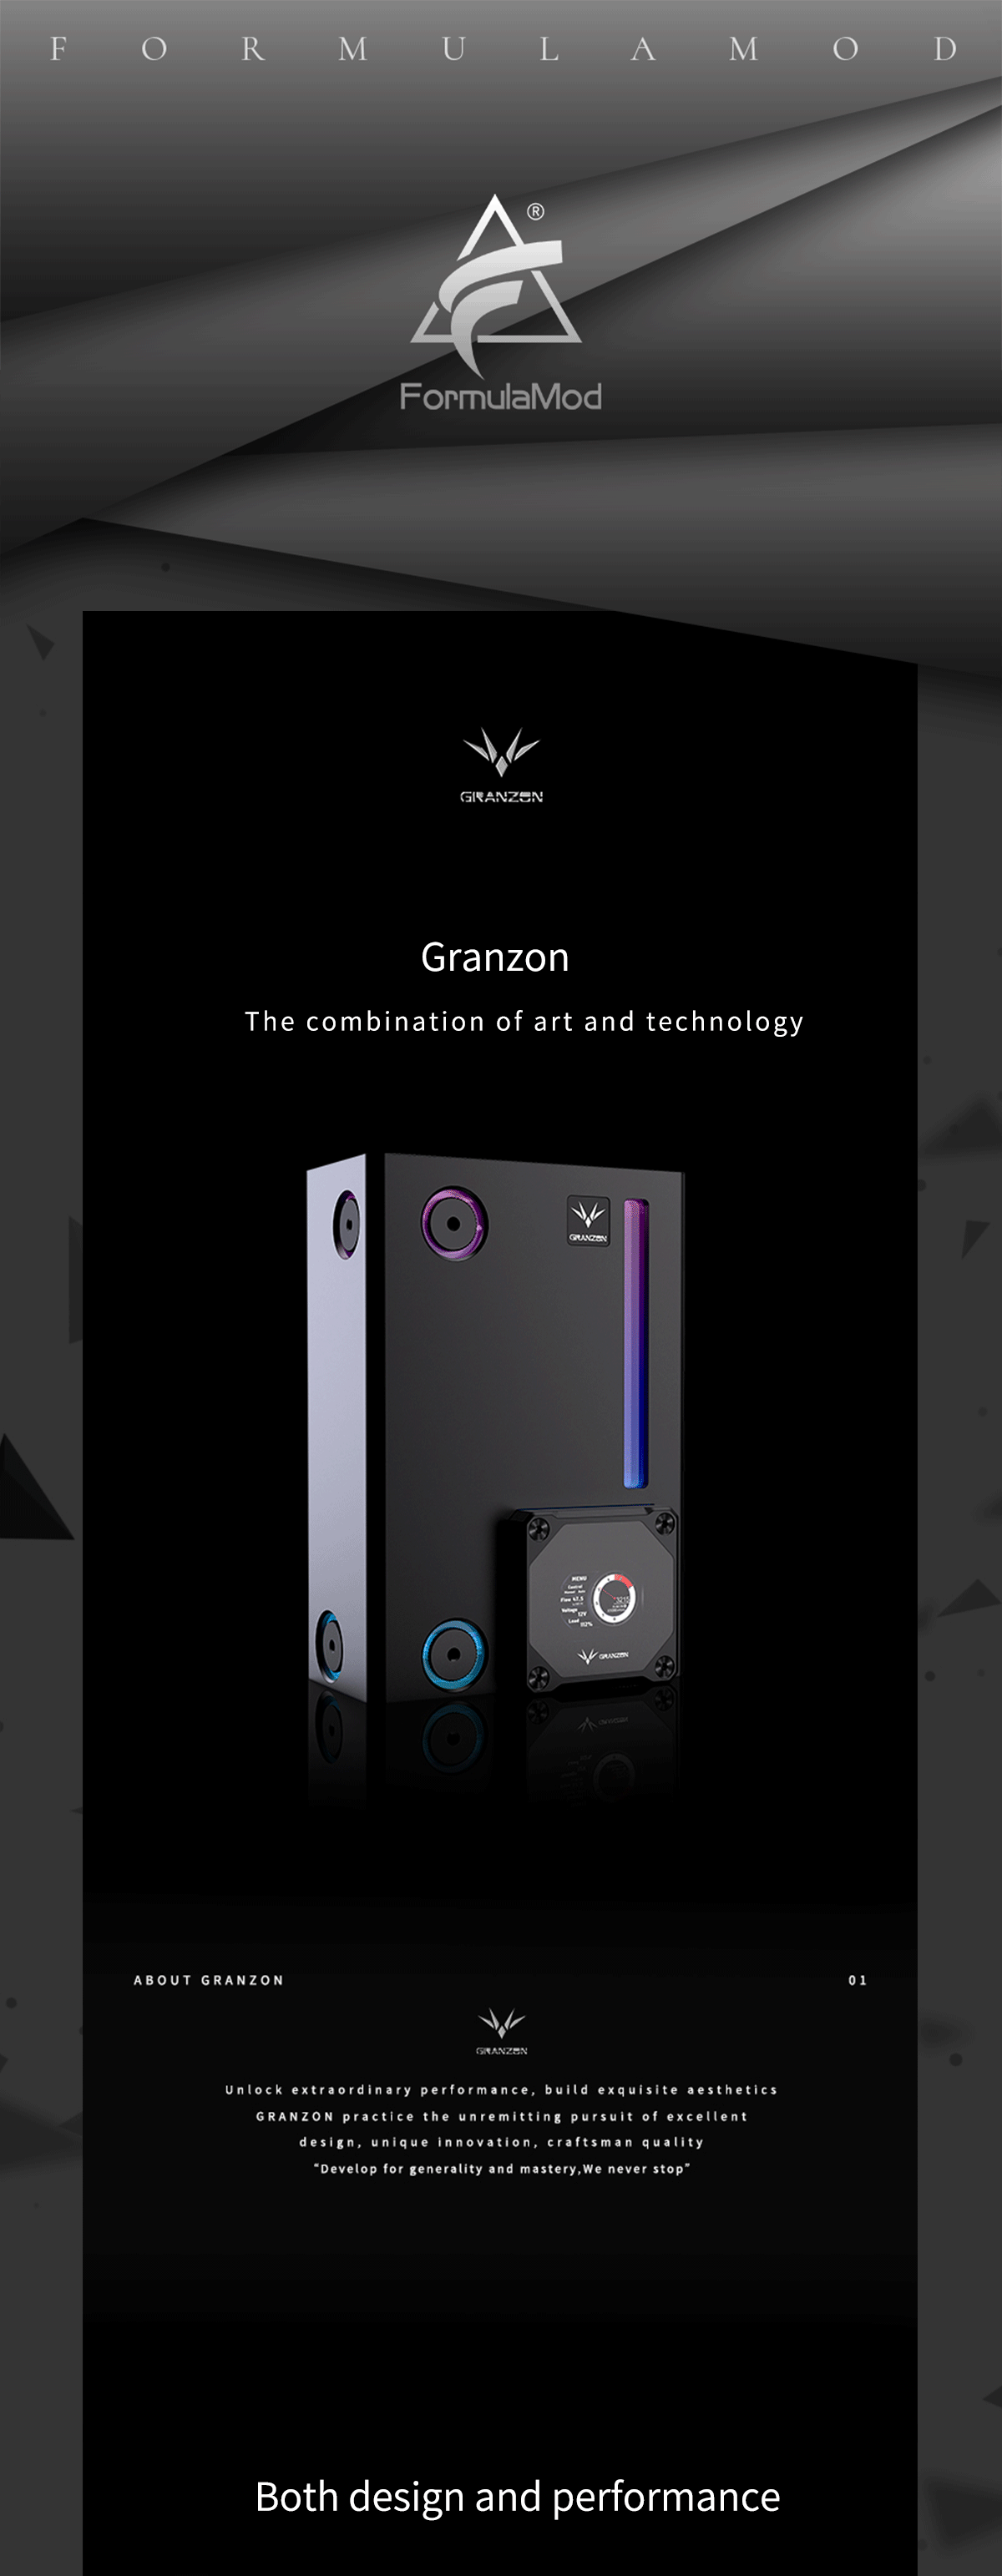 Granzon GE-A180 Square Reservoir With DDC Pump Combo, With Smart Data Digital Display, 5V A-RGB Cuboid Water Cooling Tank